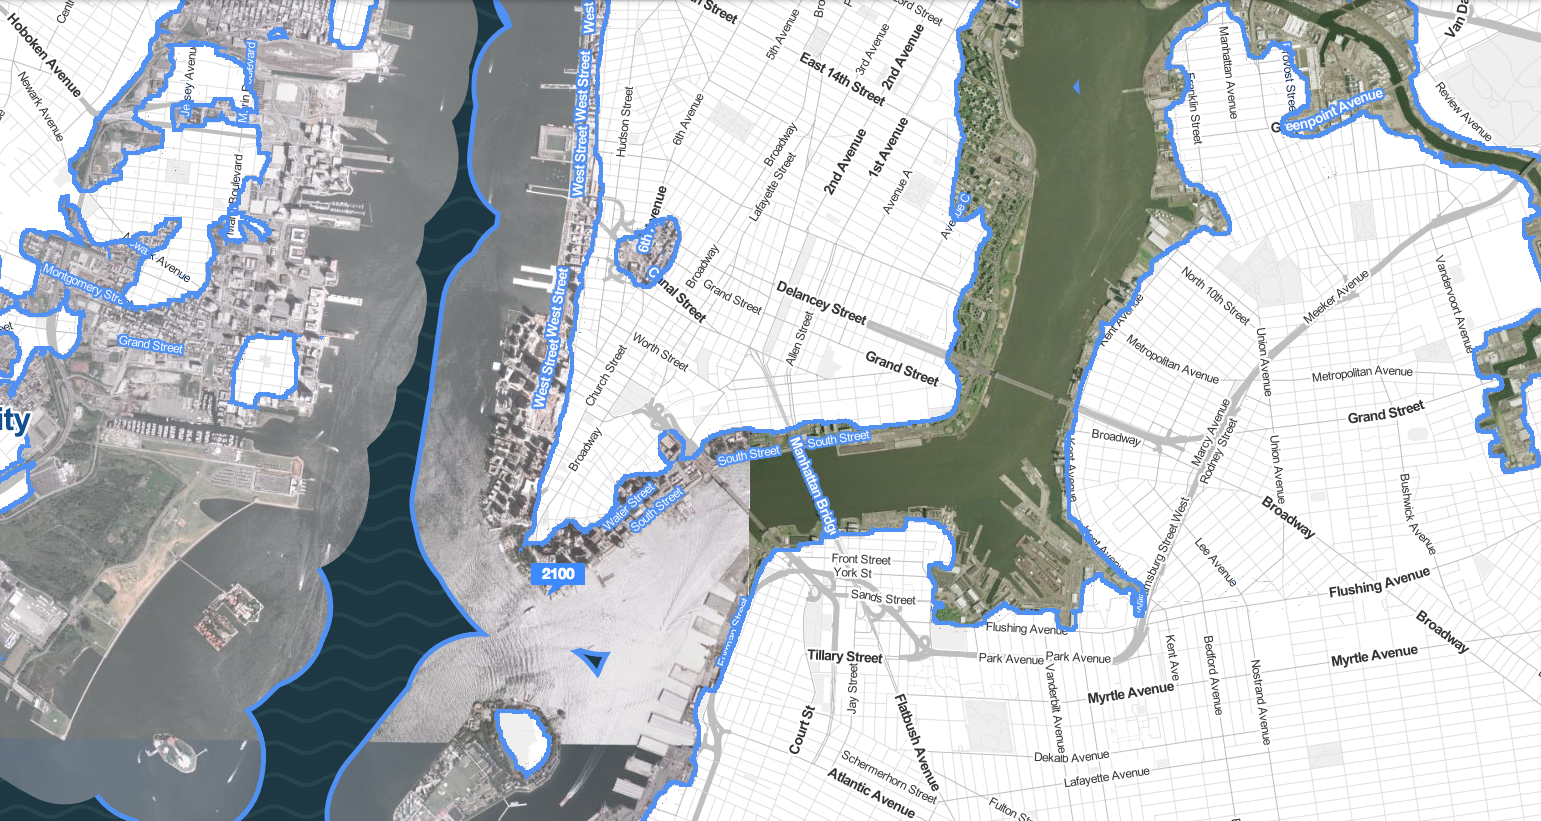 Climate Central's prediction for how lower Manhattan will look in the year 2100 due to rising sea levels.